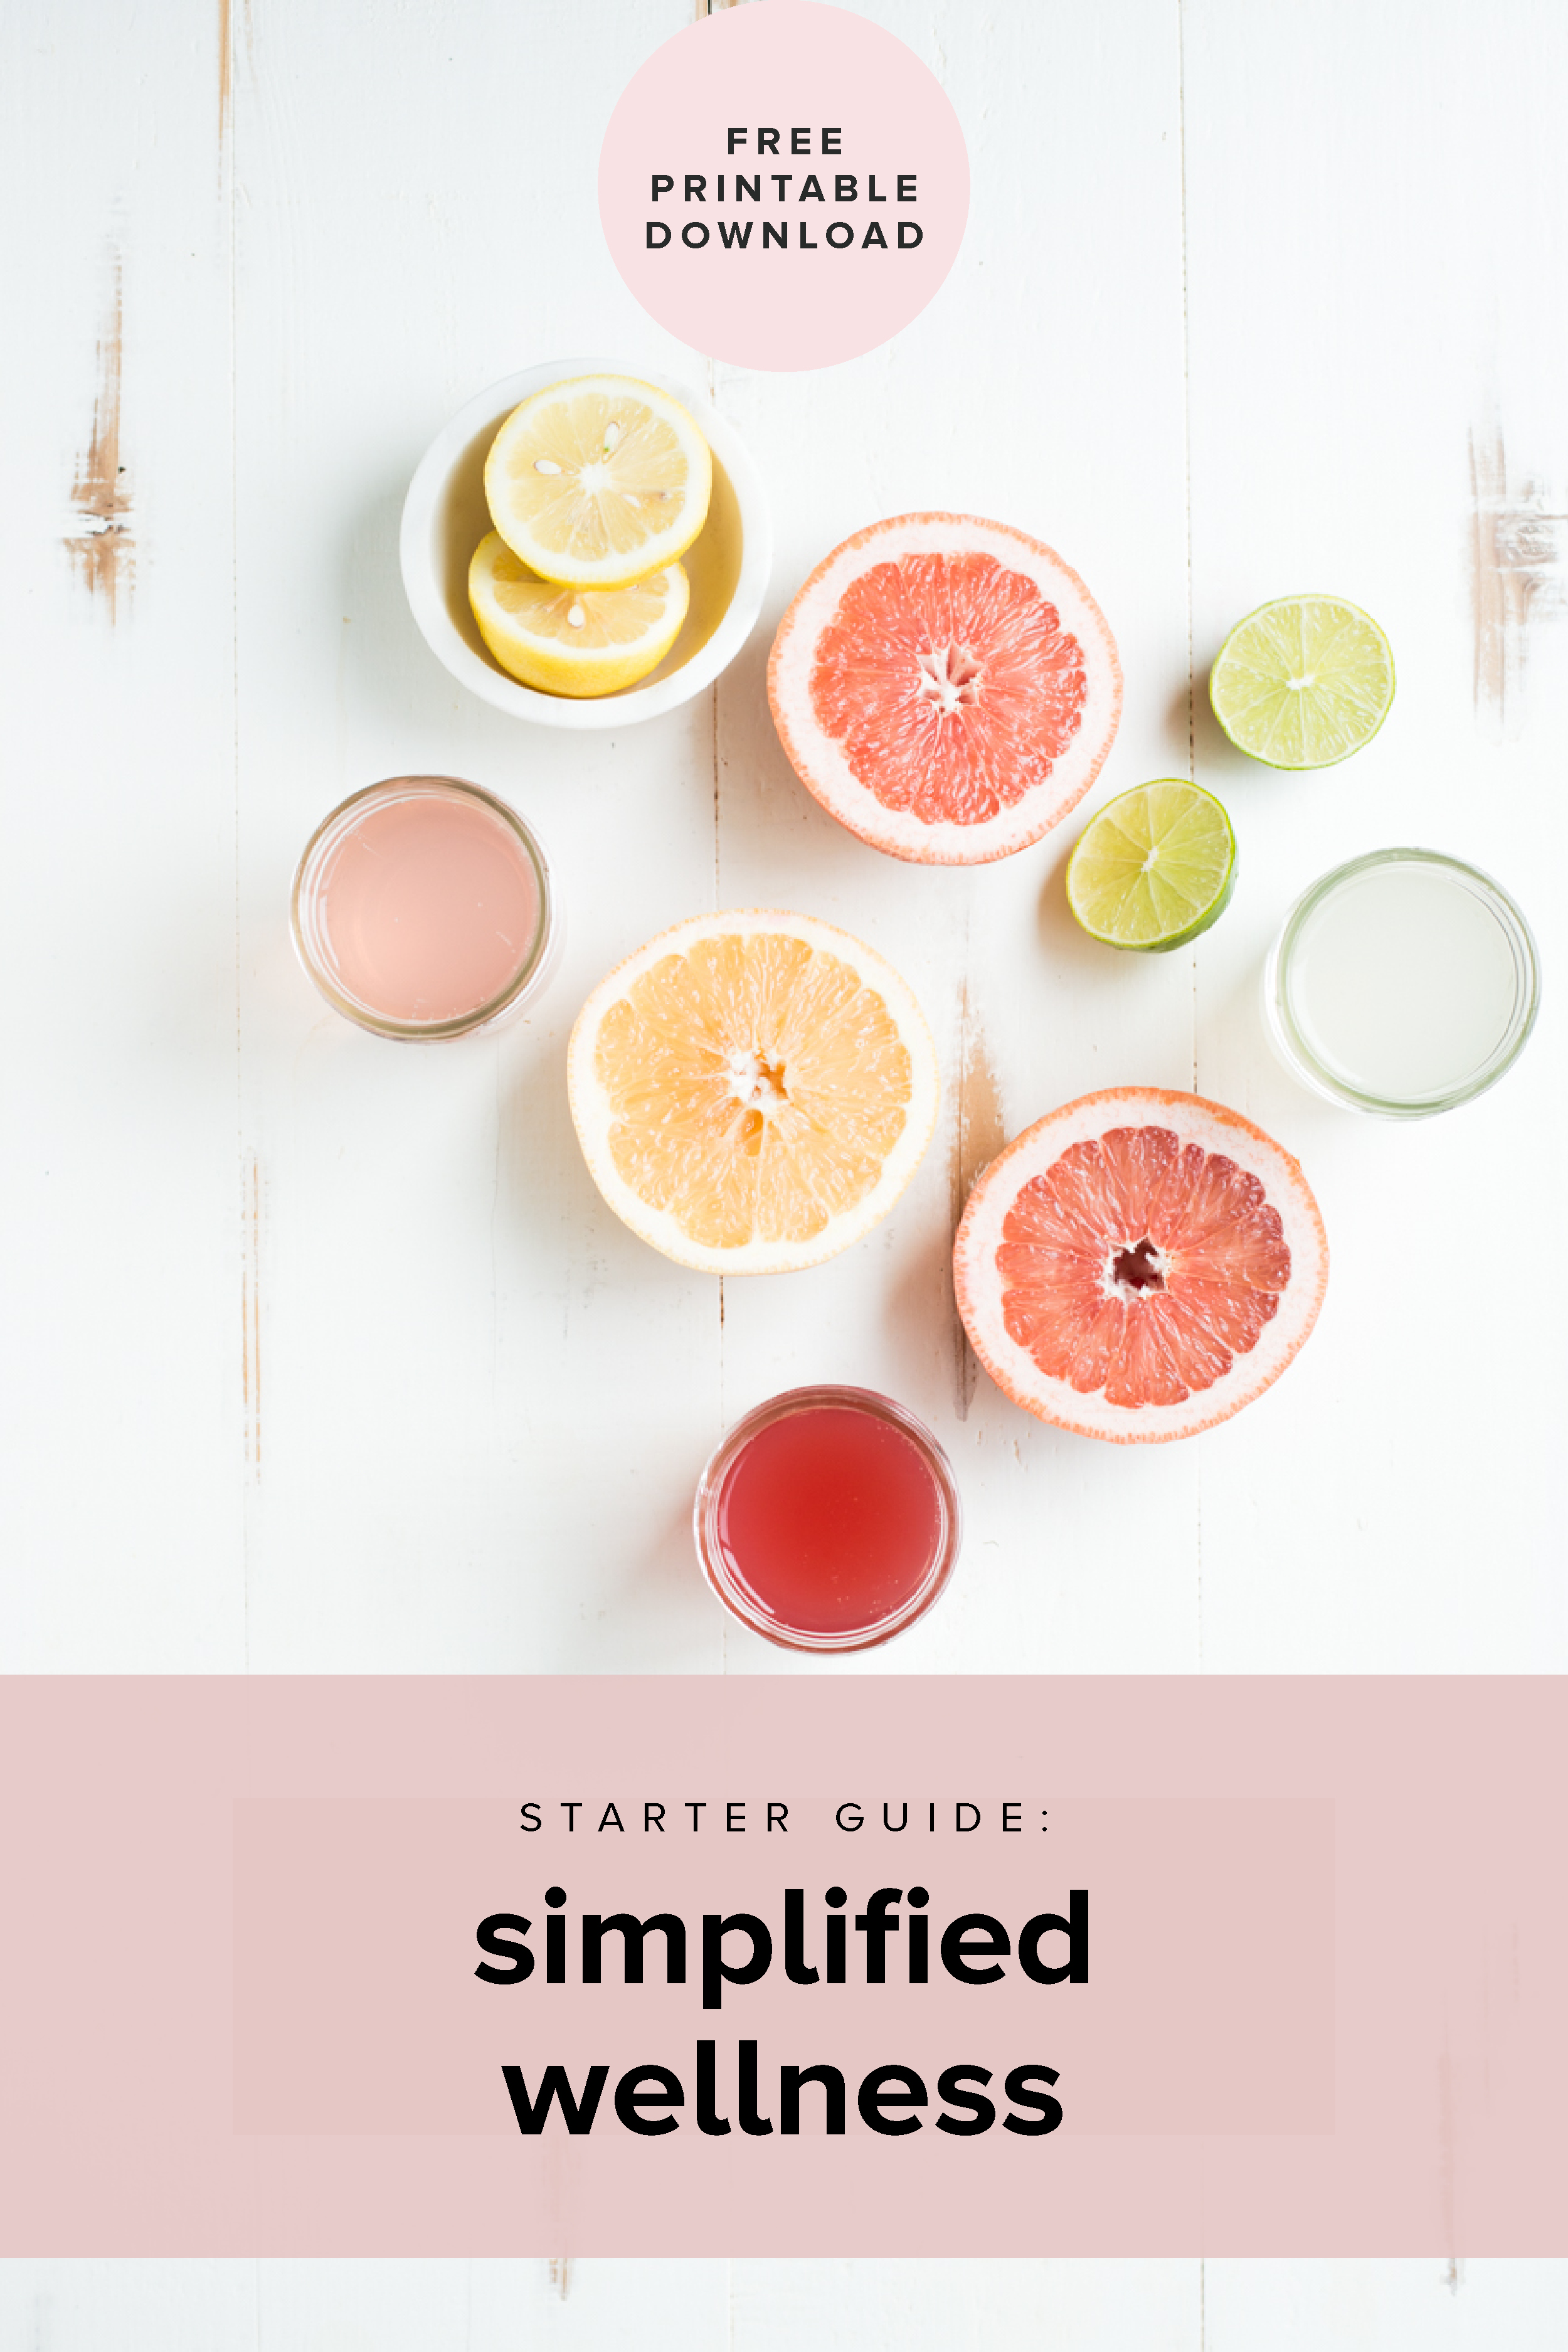 Free printable guide to simplify wellness.